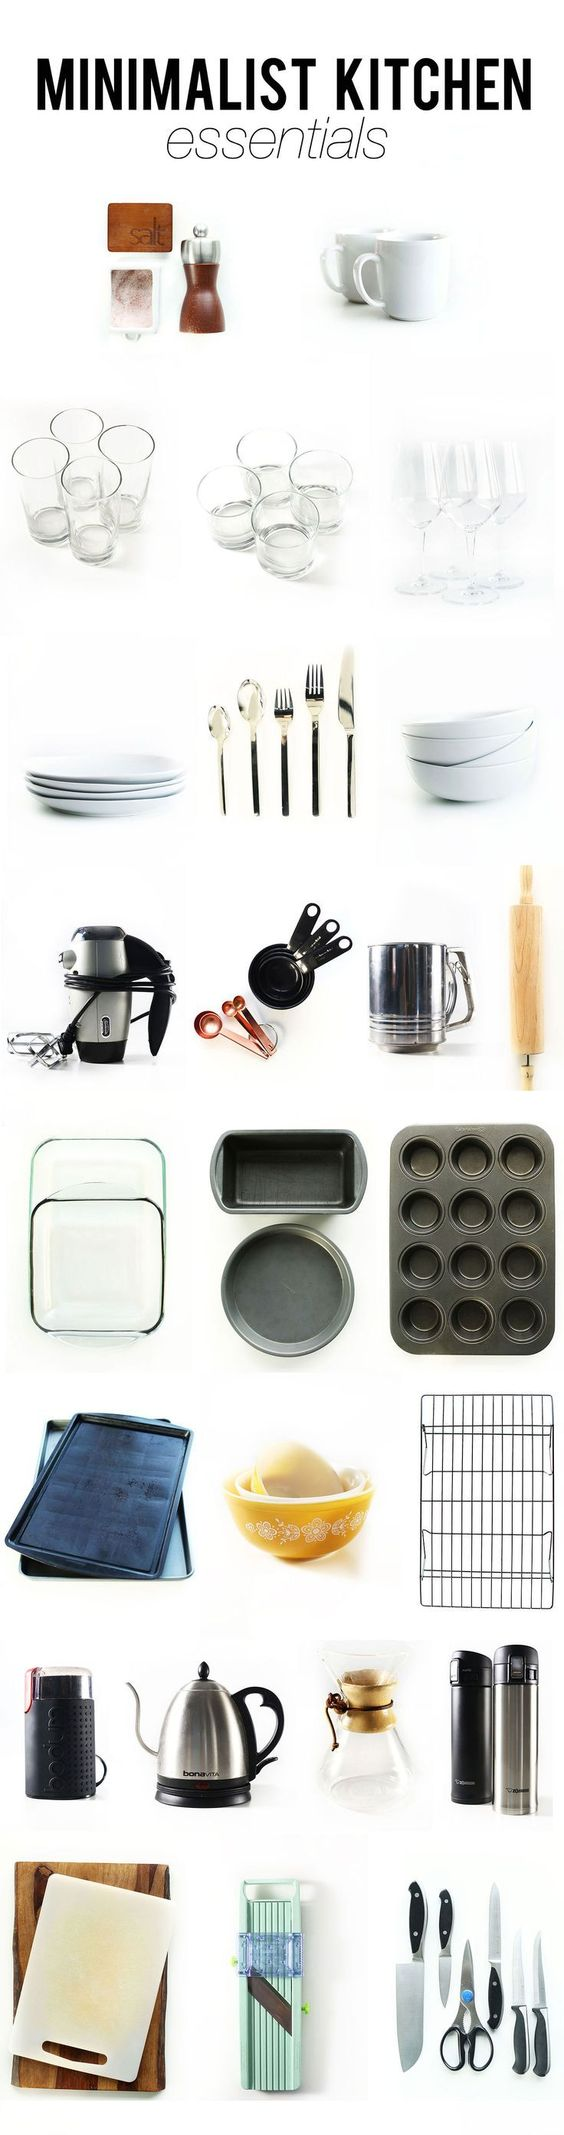 Our top-to-bottom Minimalist Kitchen Essentials | MinimalistBaker.com Minimalist Parenting,Minimalism